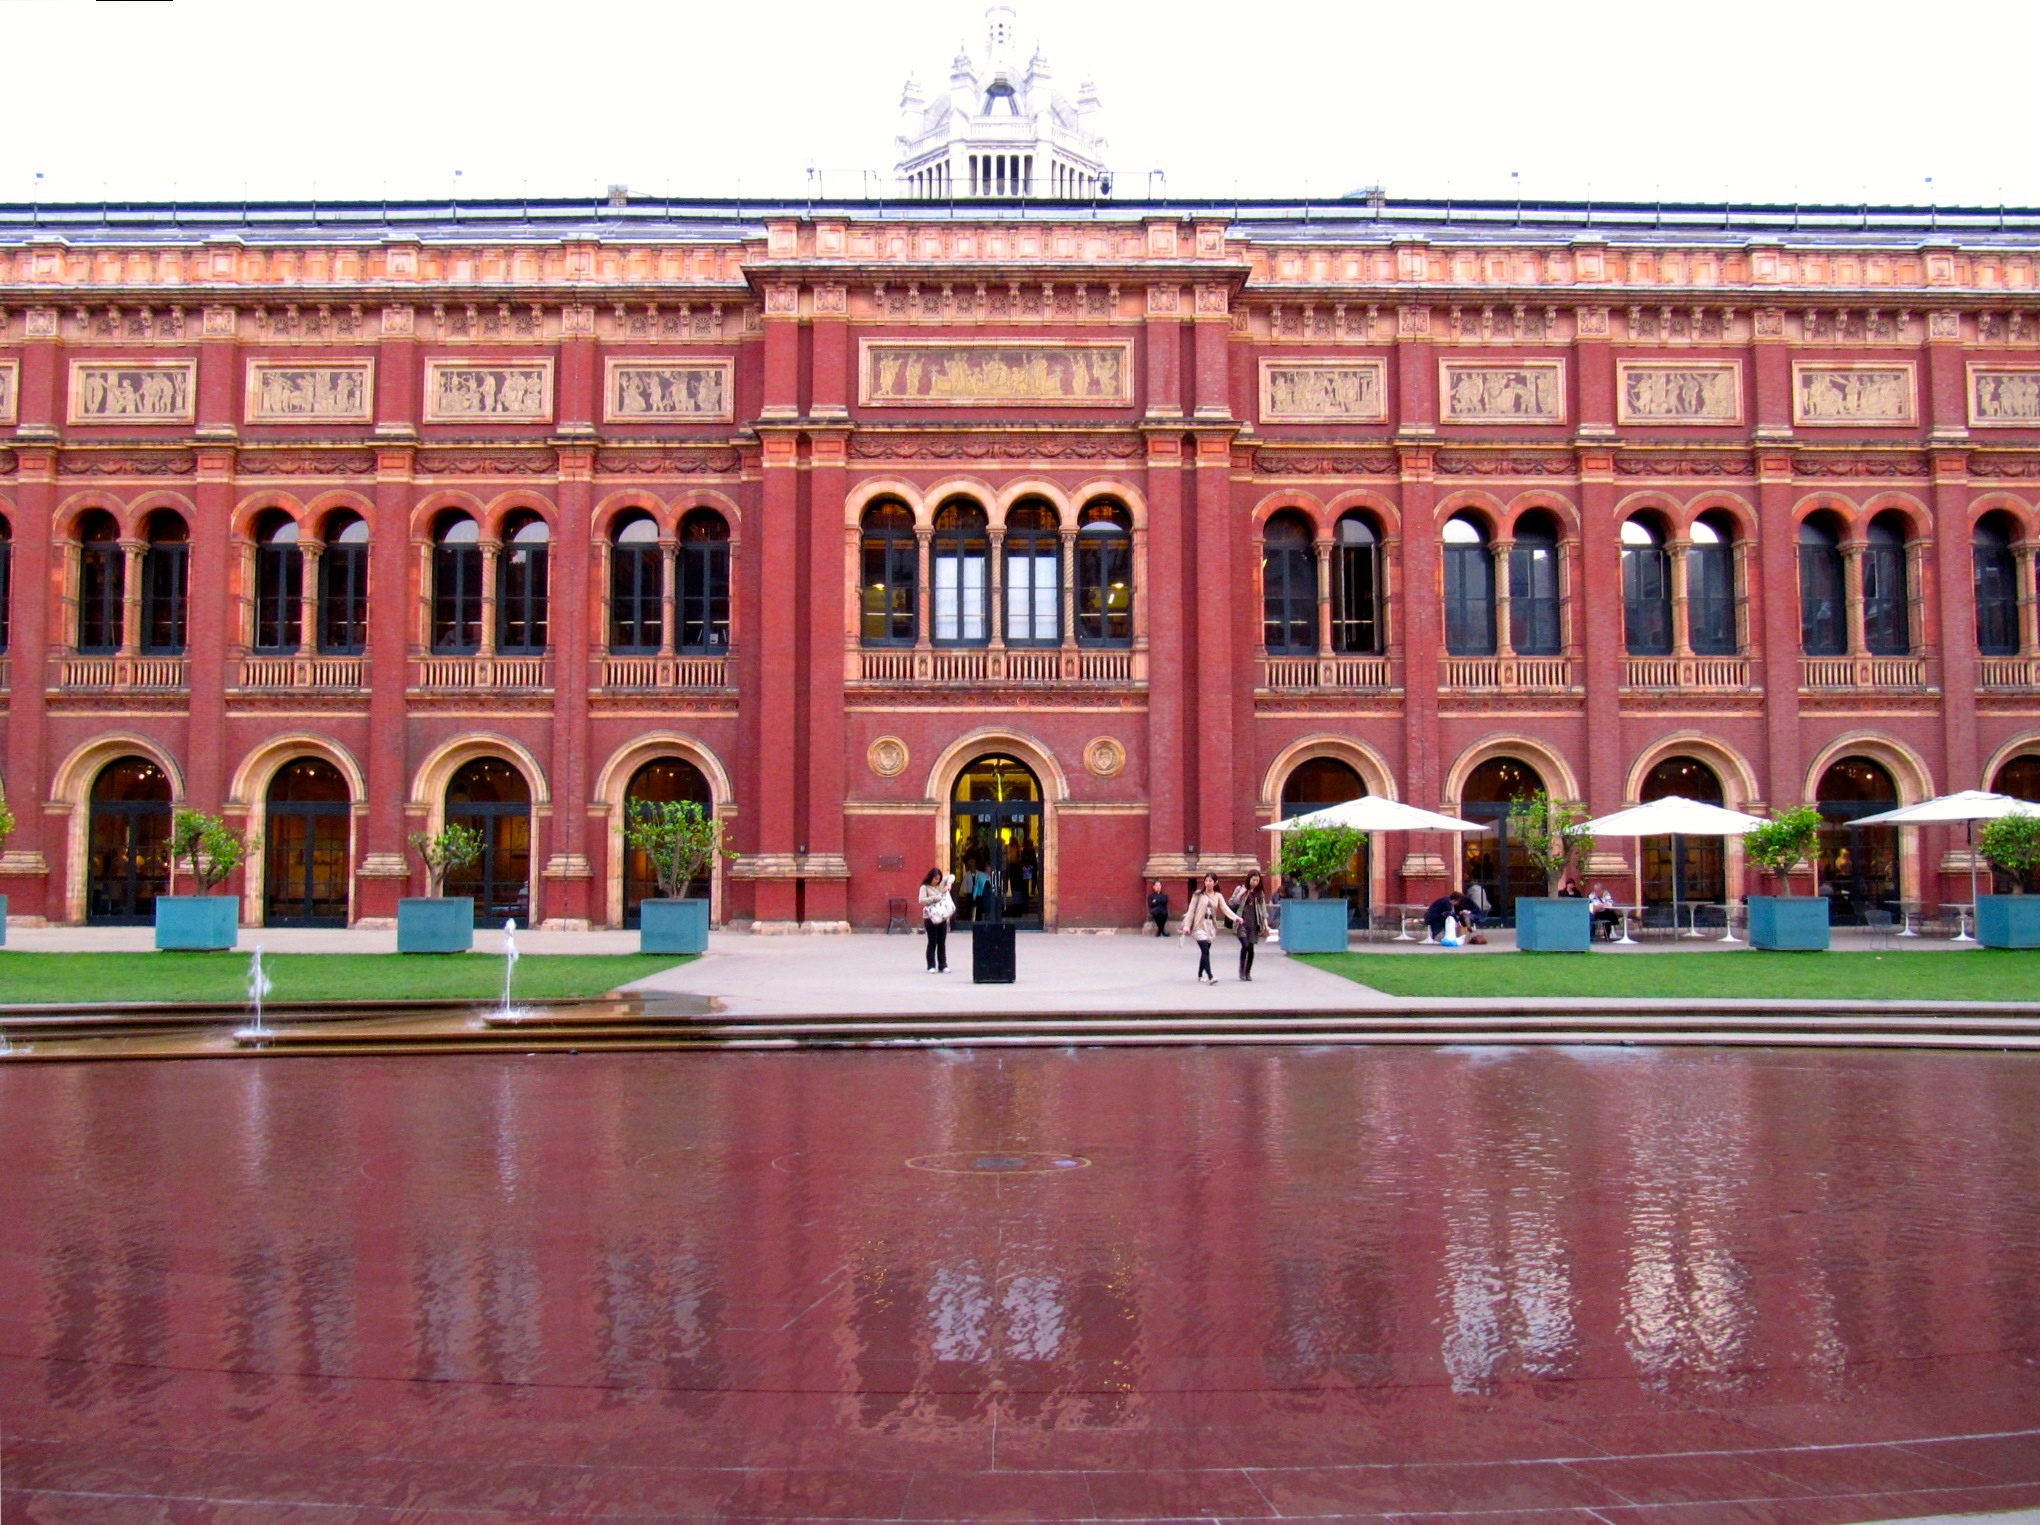 Courtyard at V&A Museum.